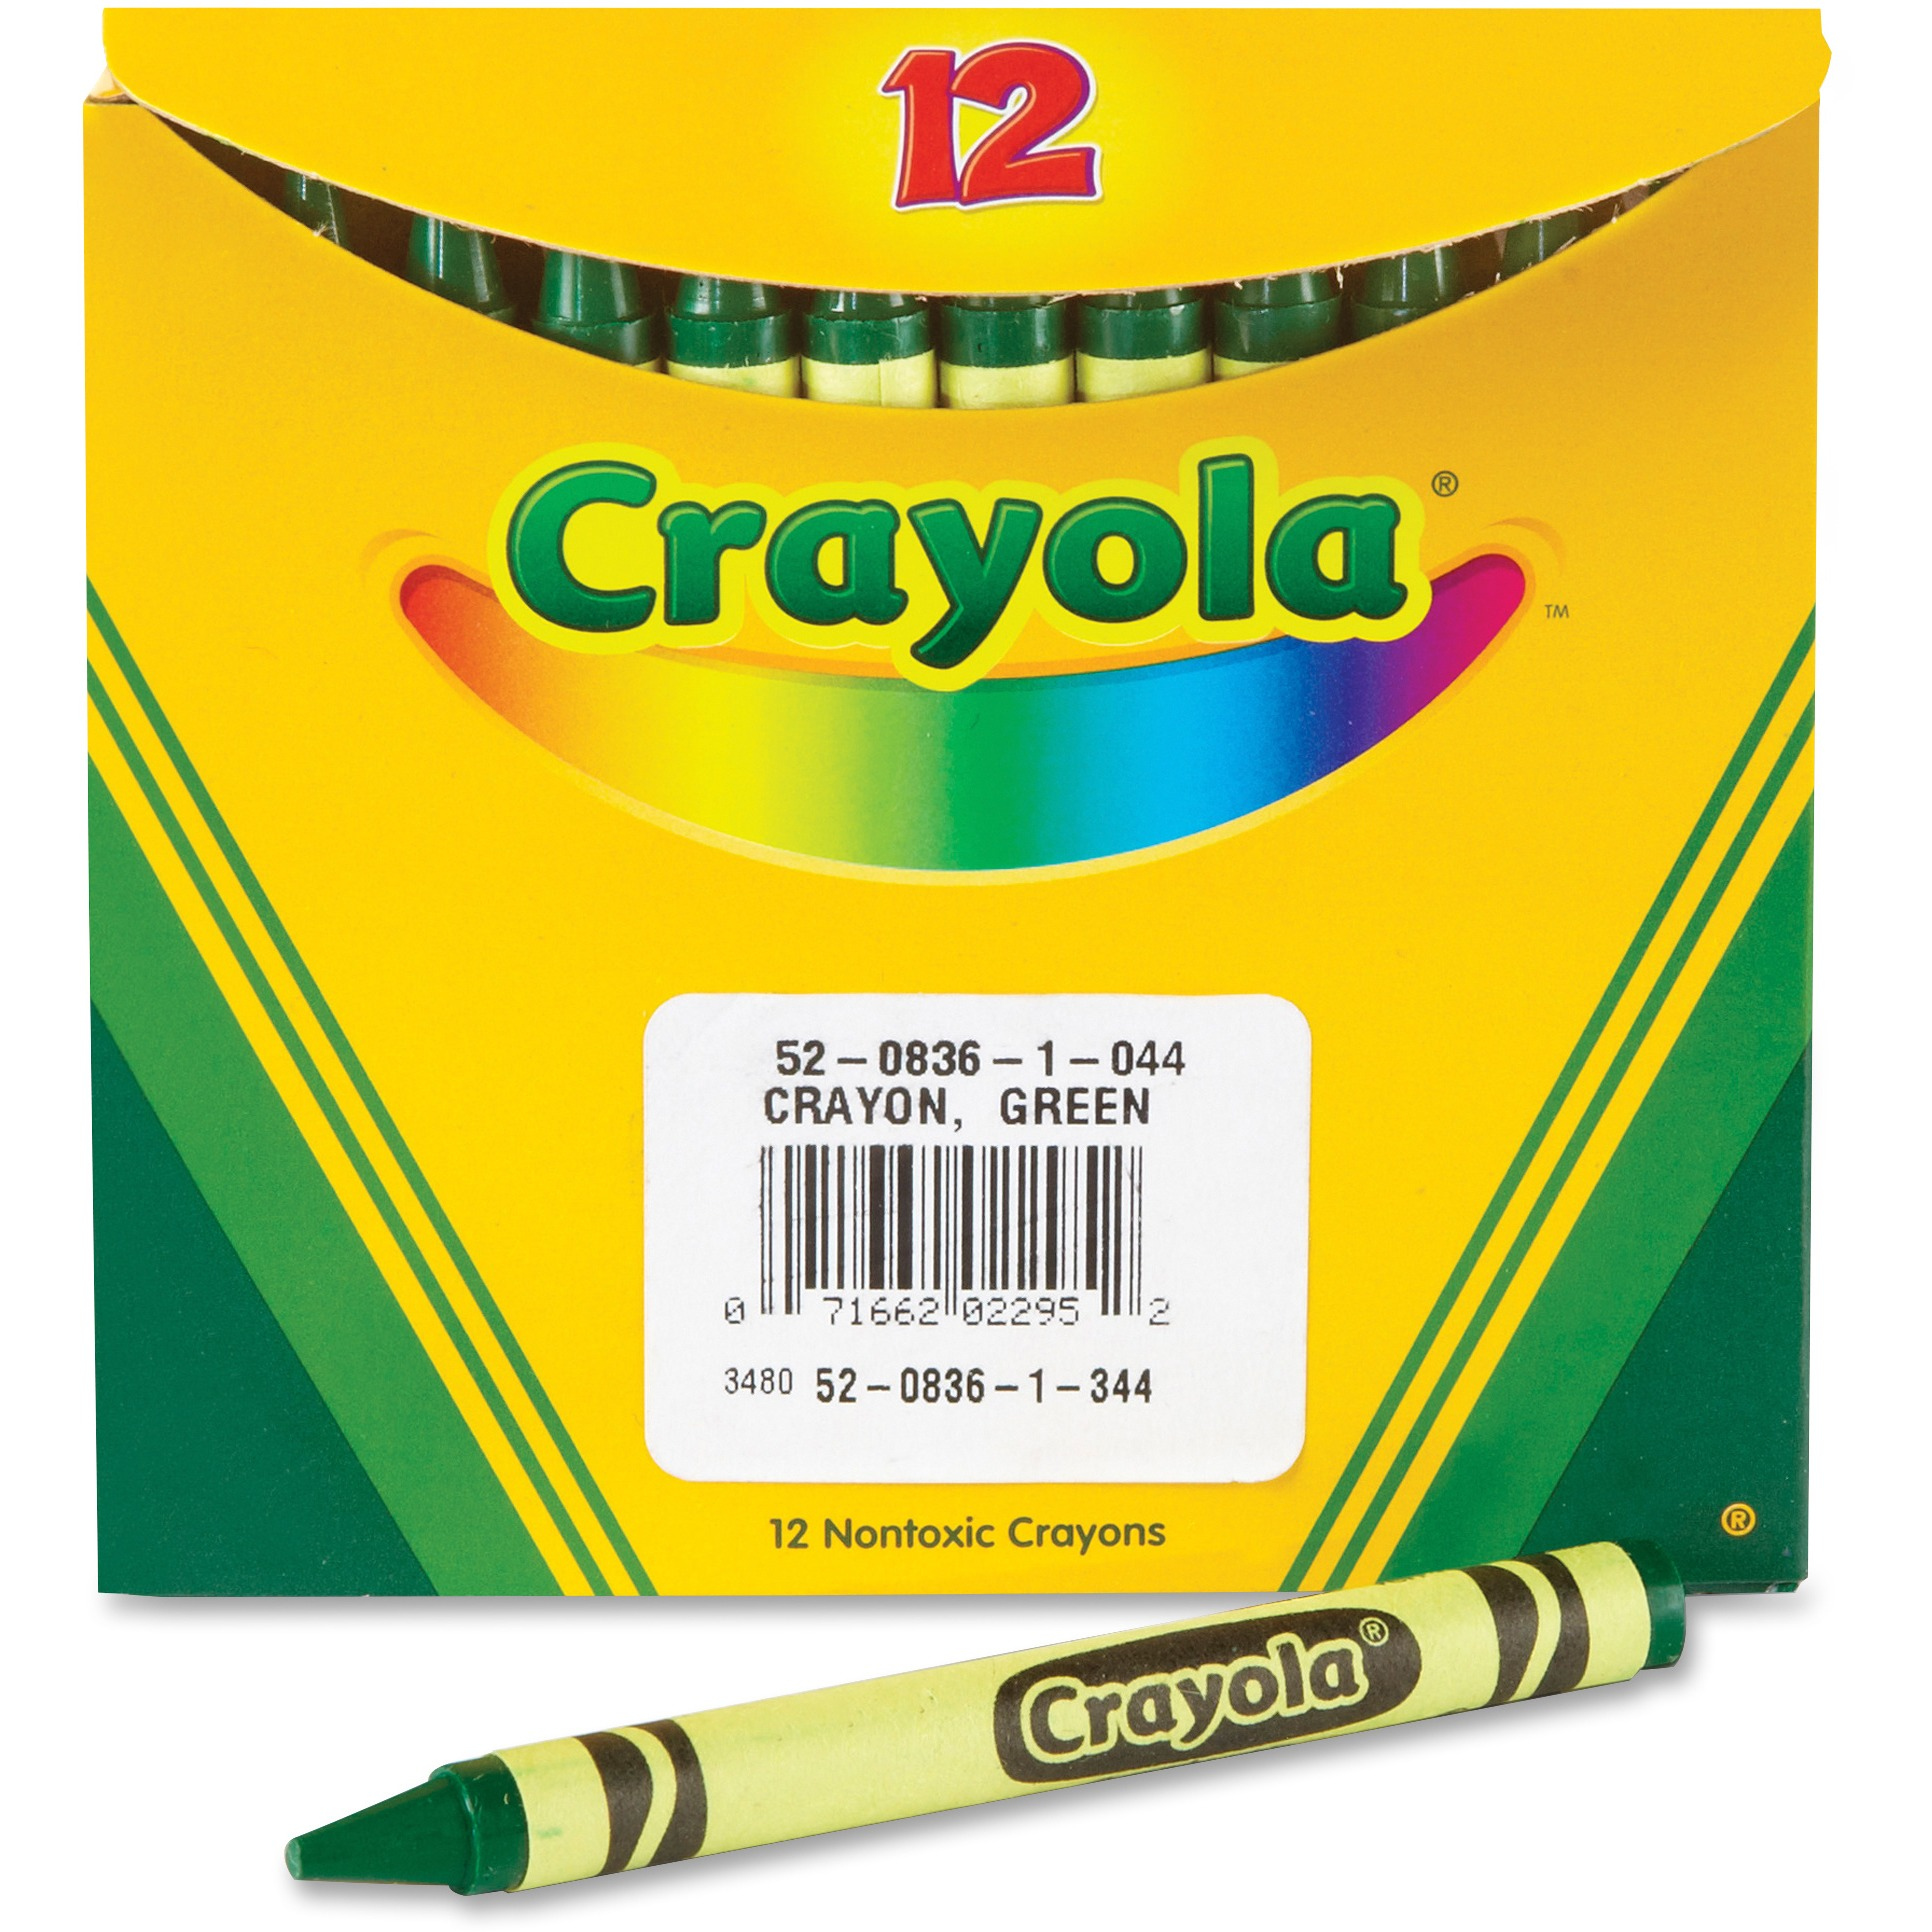 Crayola Bulk Crayons, Pack of 12, Green